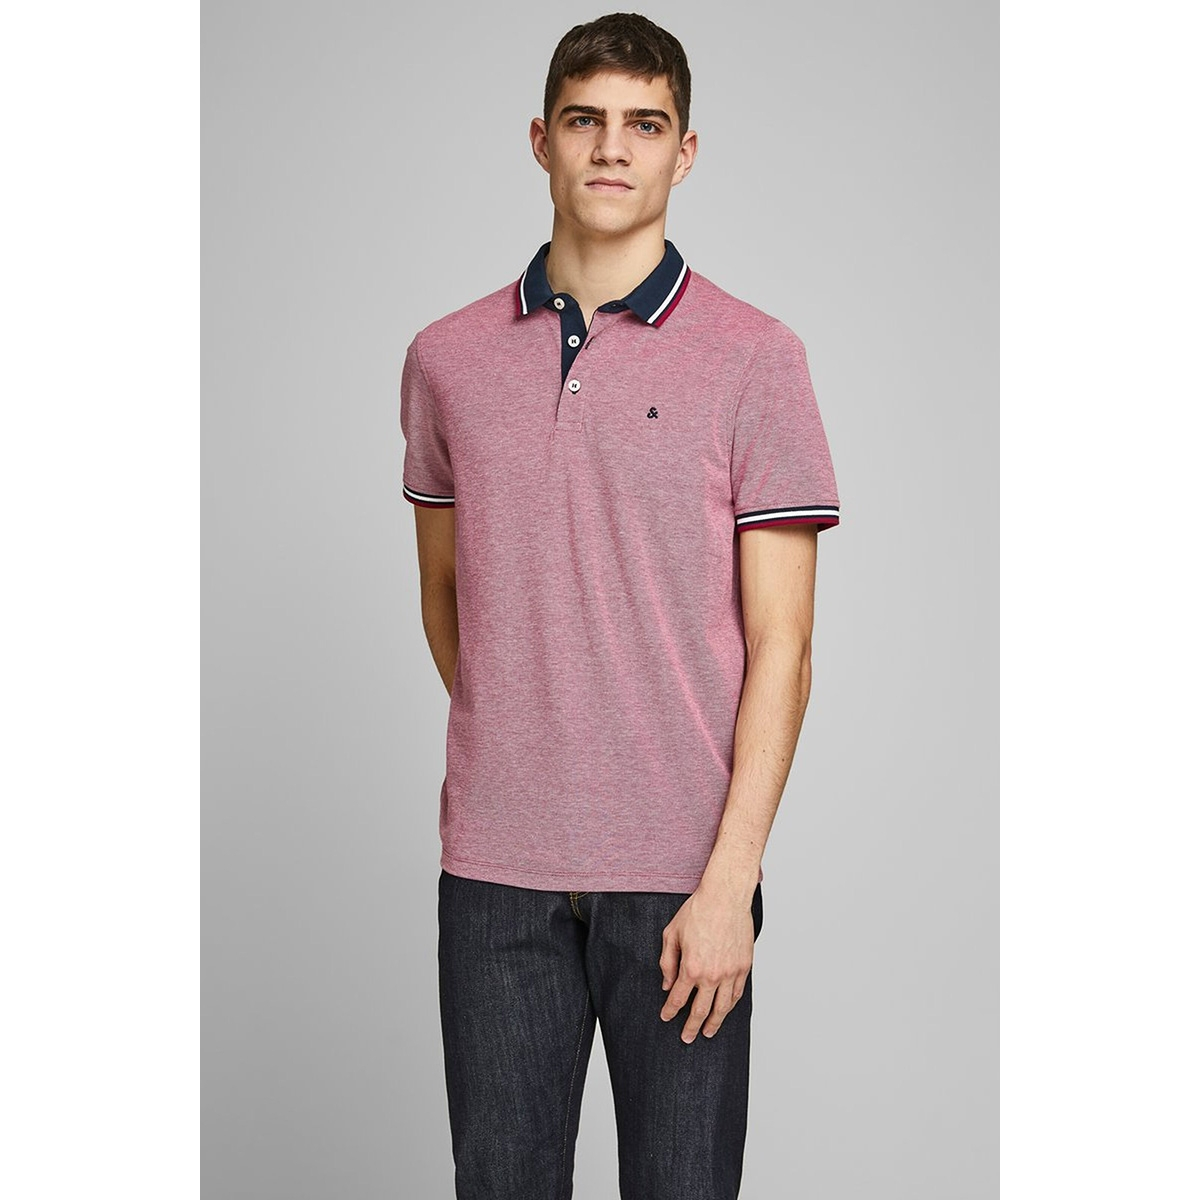 jjepaulos polo ss noos 12136668 jack & jones polo rio red/slim fit